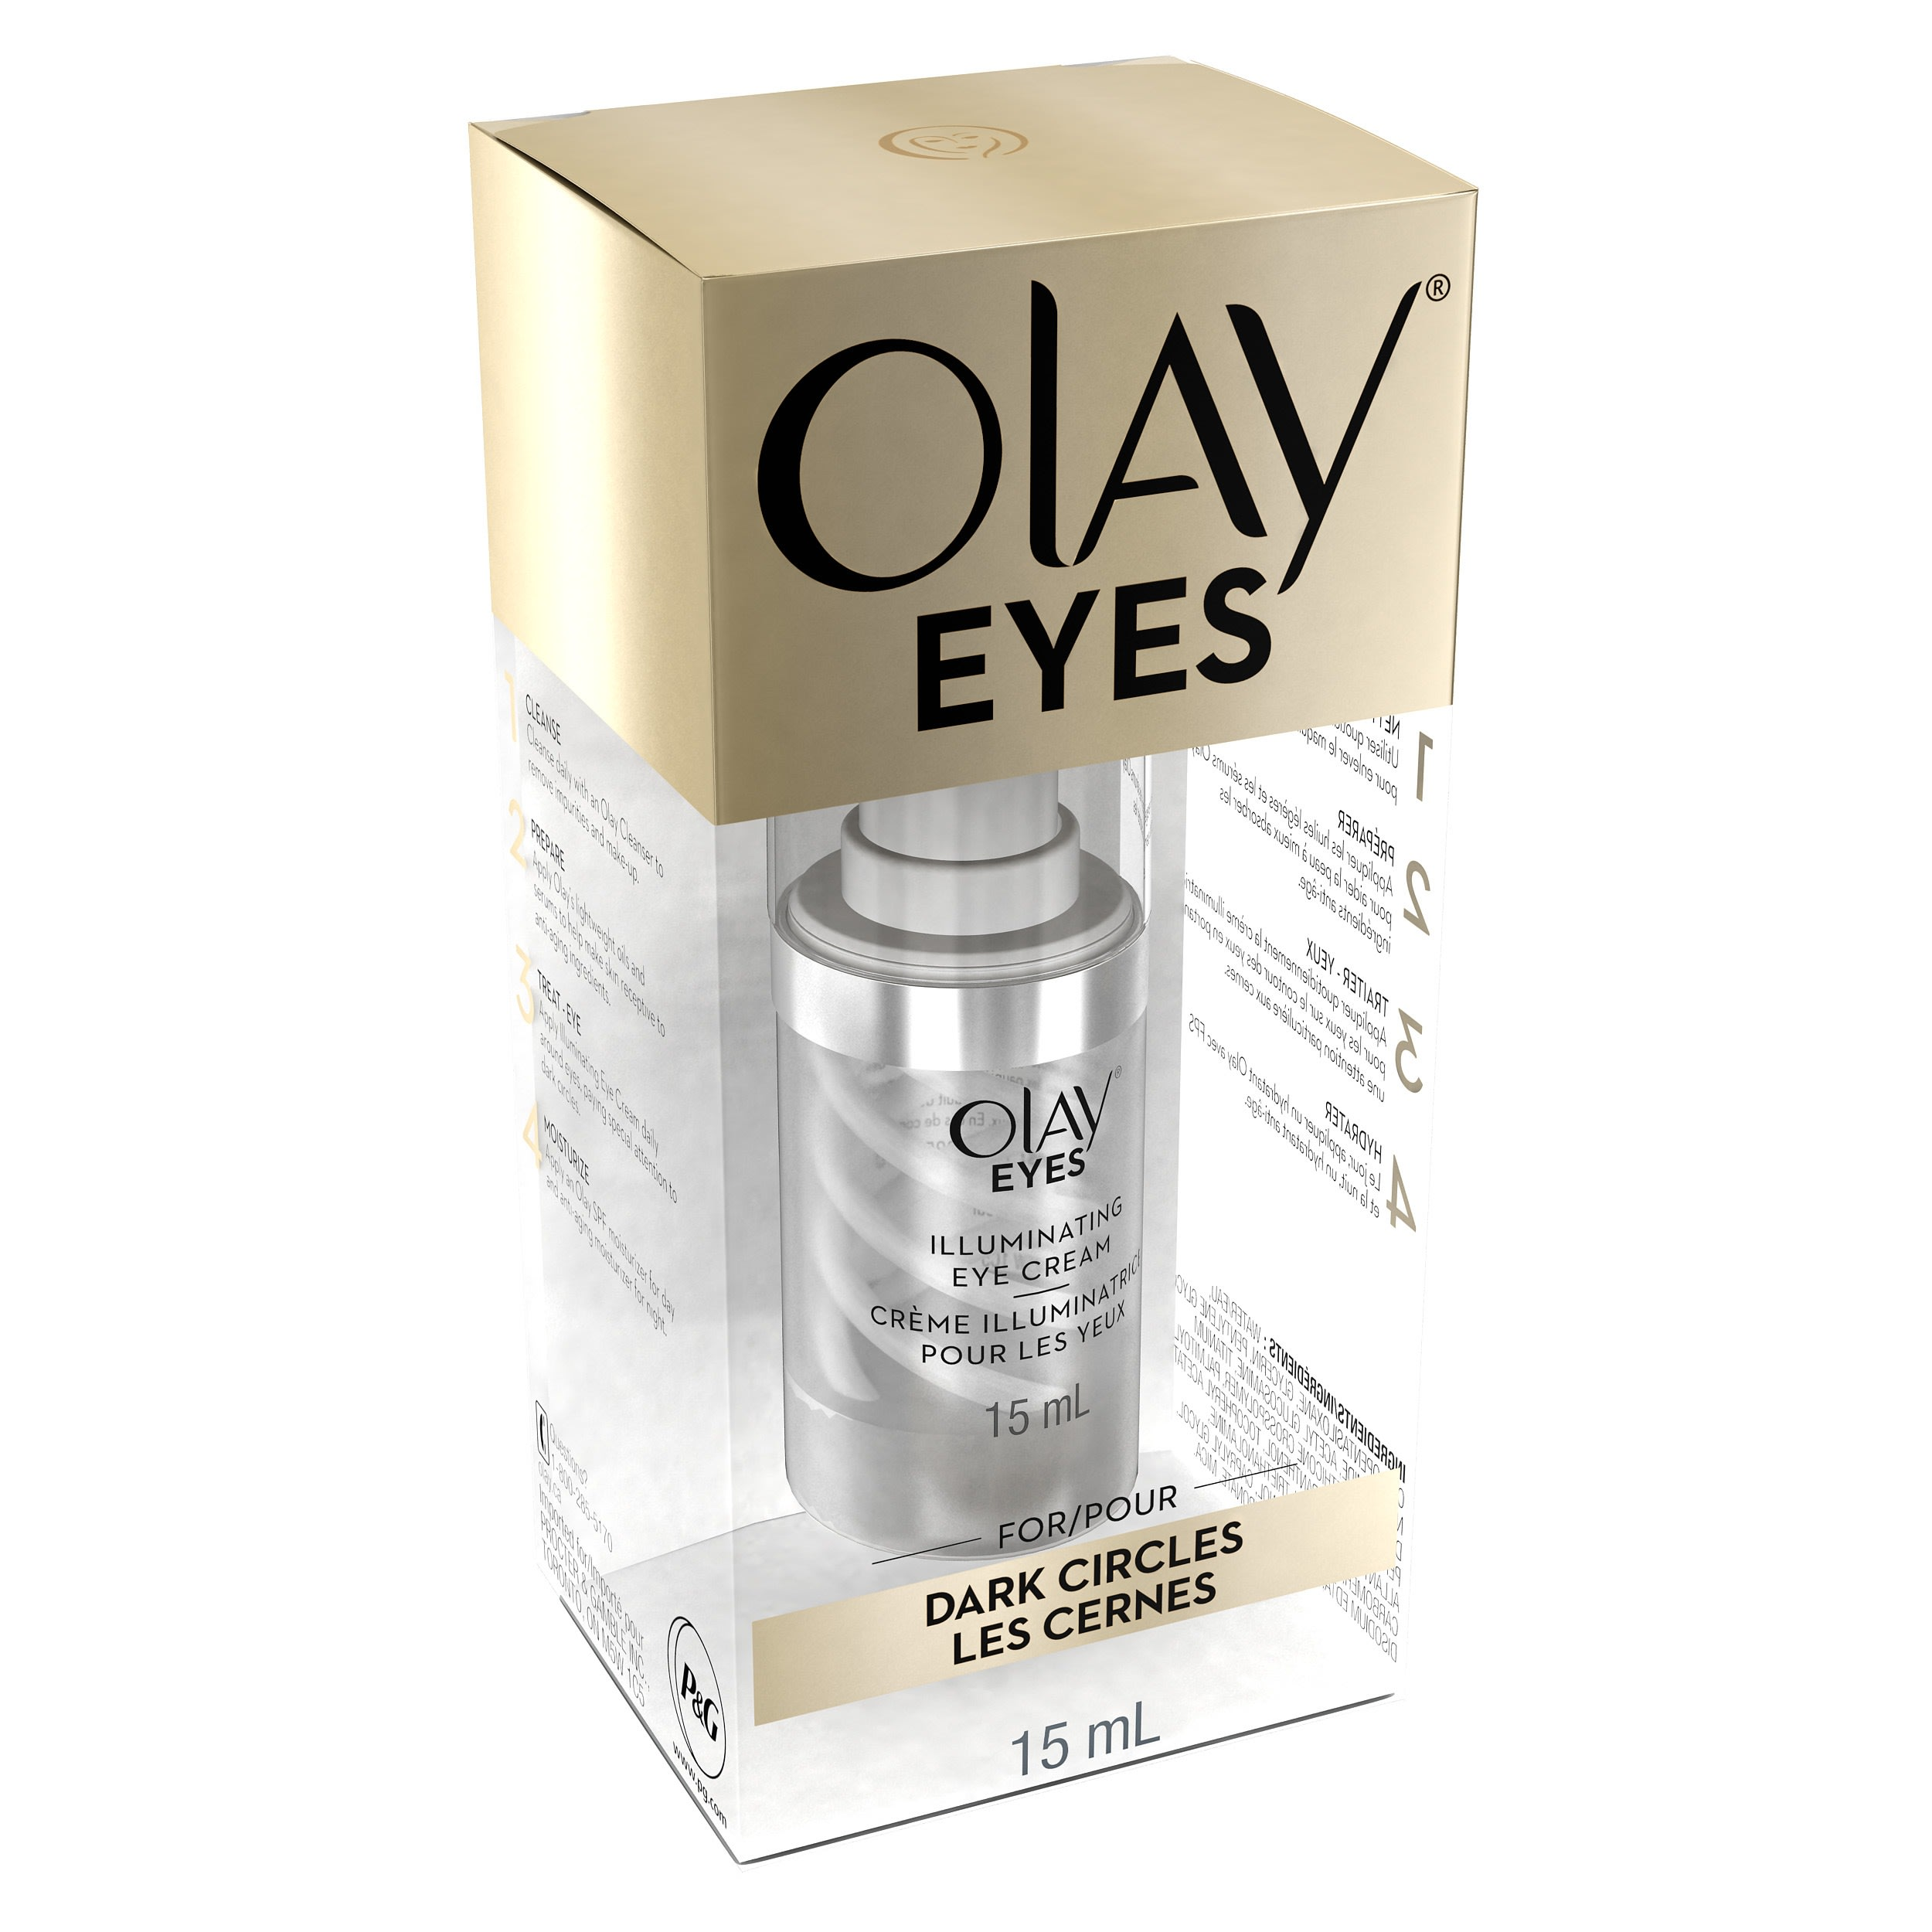 olay_eyes_illuminating_eye_cream-3